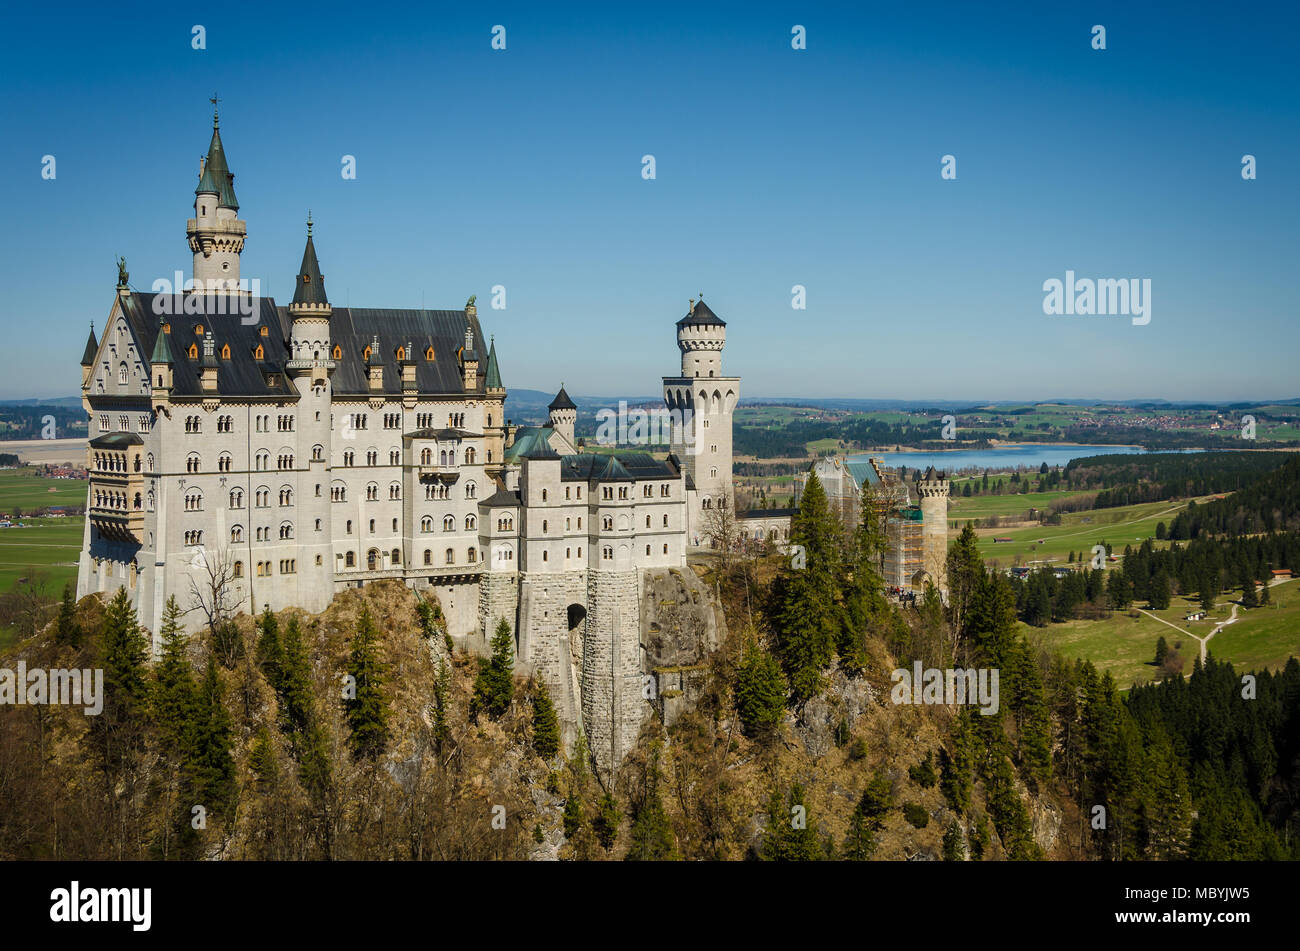 Castle Neuschwanstein in the alps - Stock Image